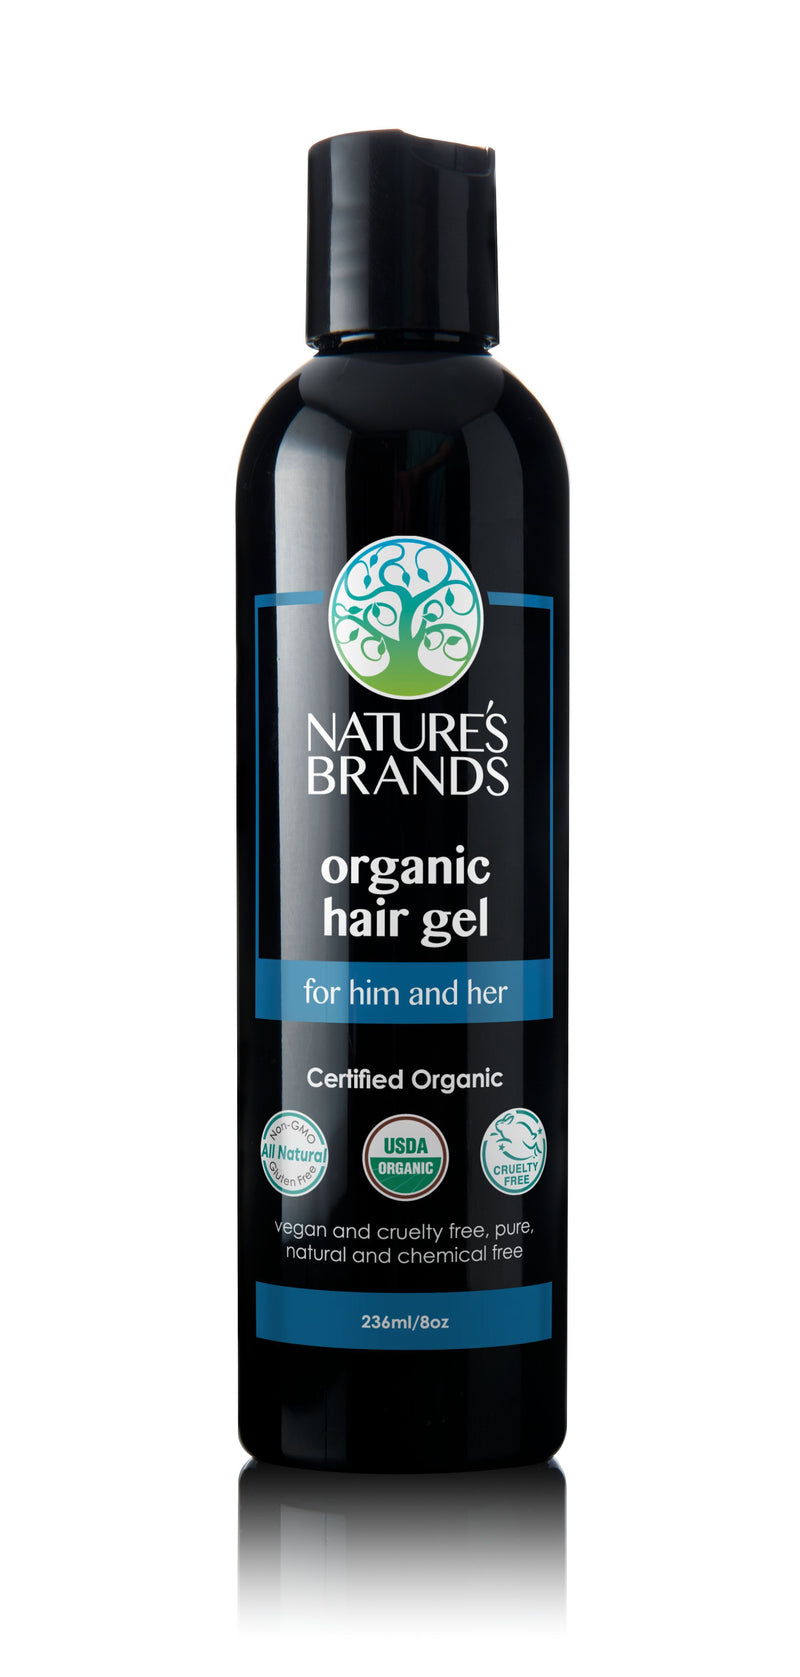 Herbal Choice Mari Organic Hair Gel - Herbal Choice Mari Organic Hair Gel - Plastic Bottle (236ml/8oz)